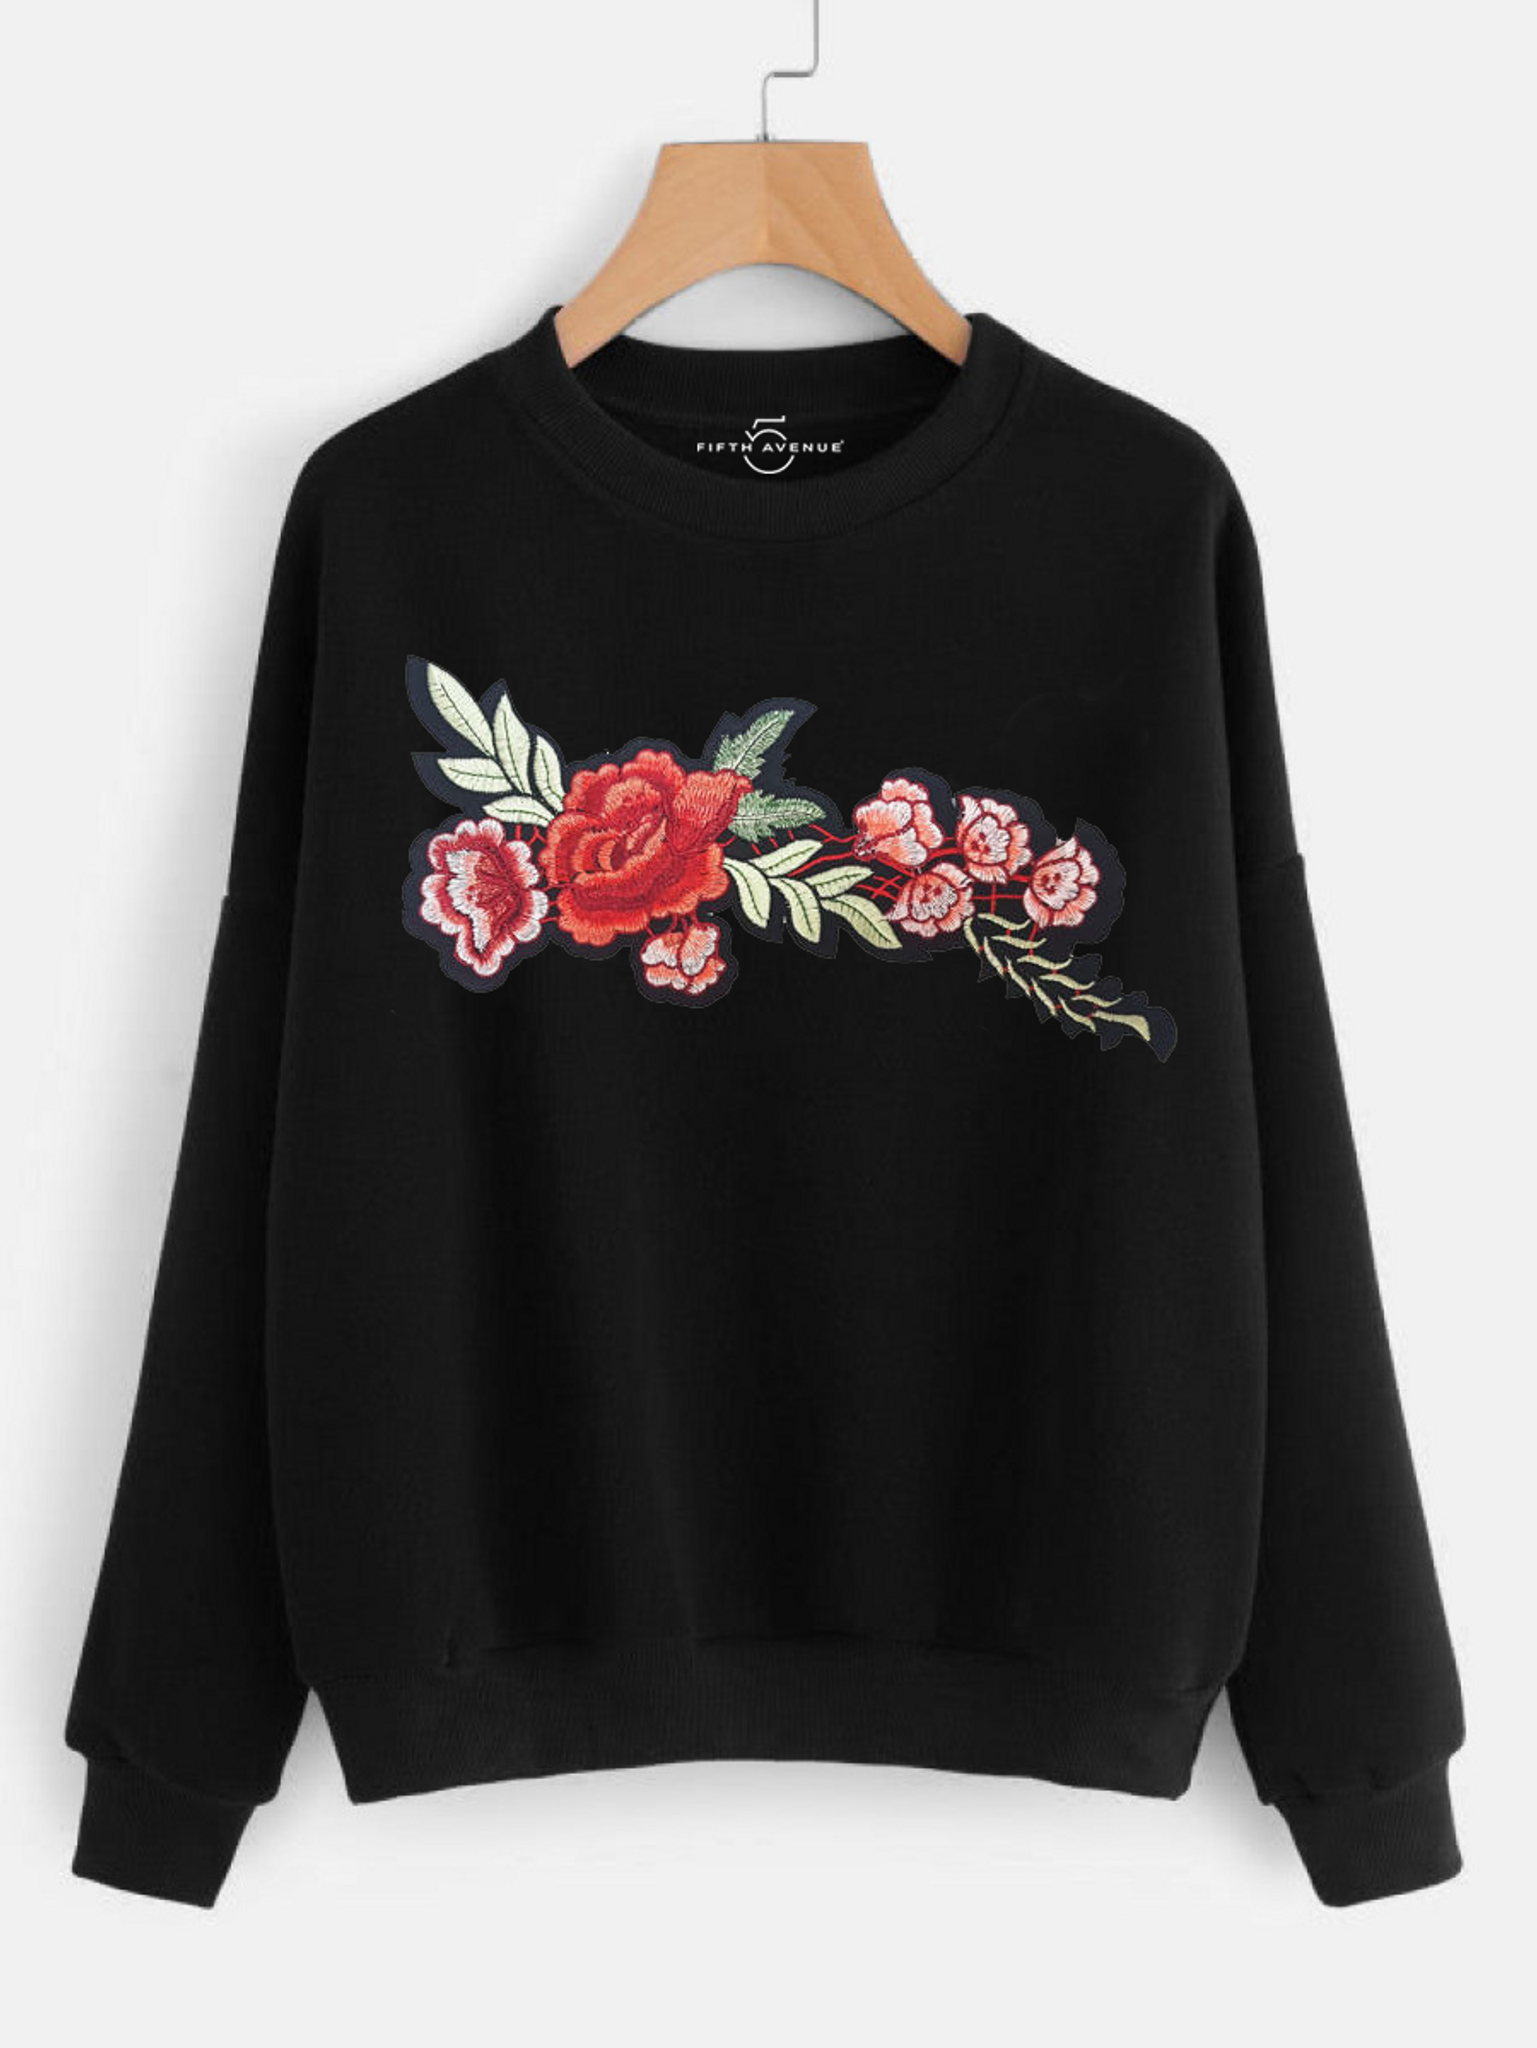 Fifth Avenue NINT2 Floral Embroidered Sweatshirt - Black